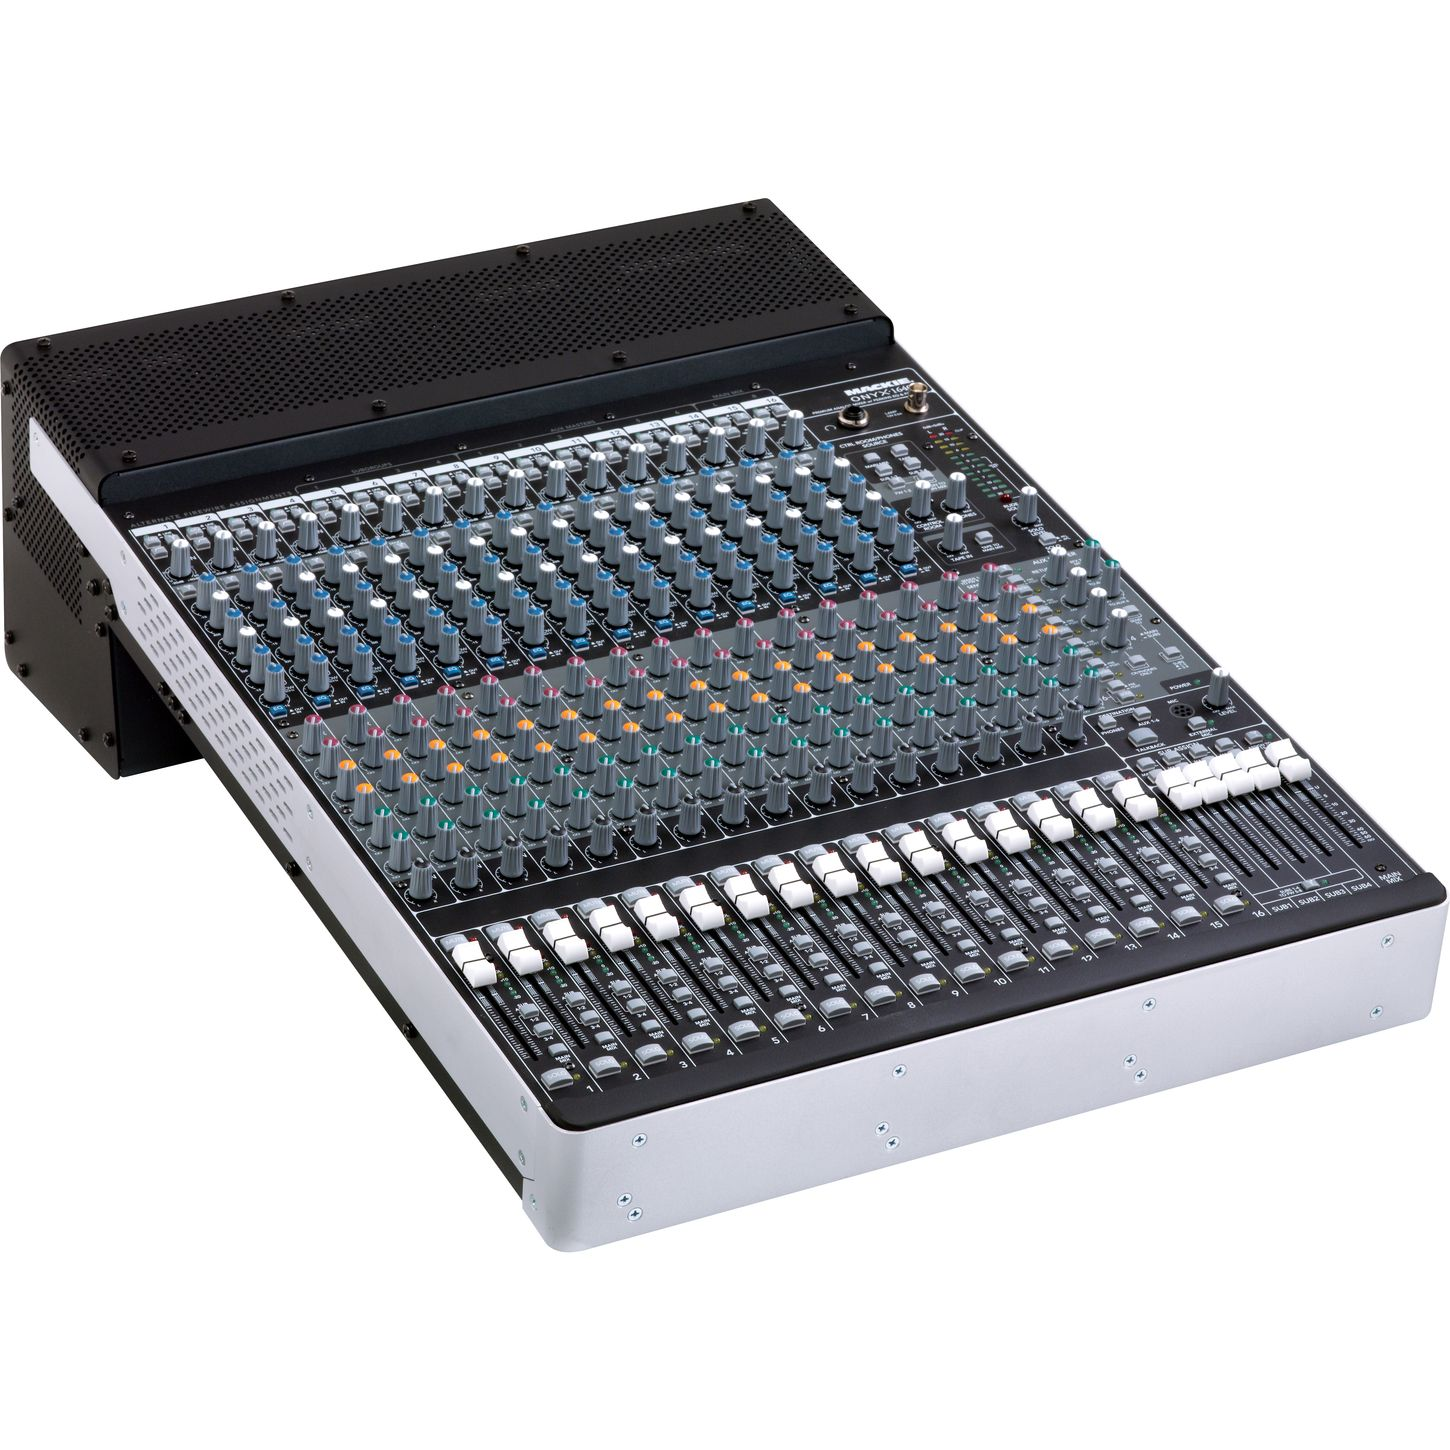 1640i with 16 Onyx Mic Pre's and Perkins EQ's for 16 channel LIVE 24bit recordings